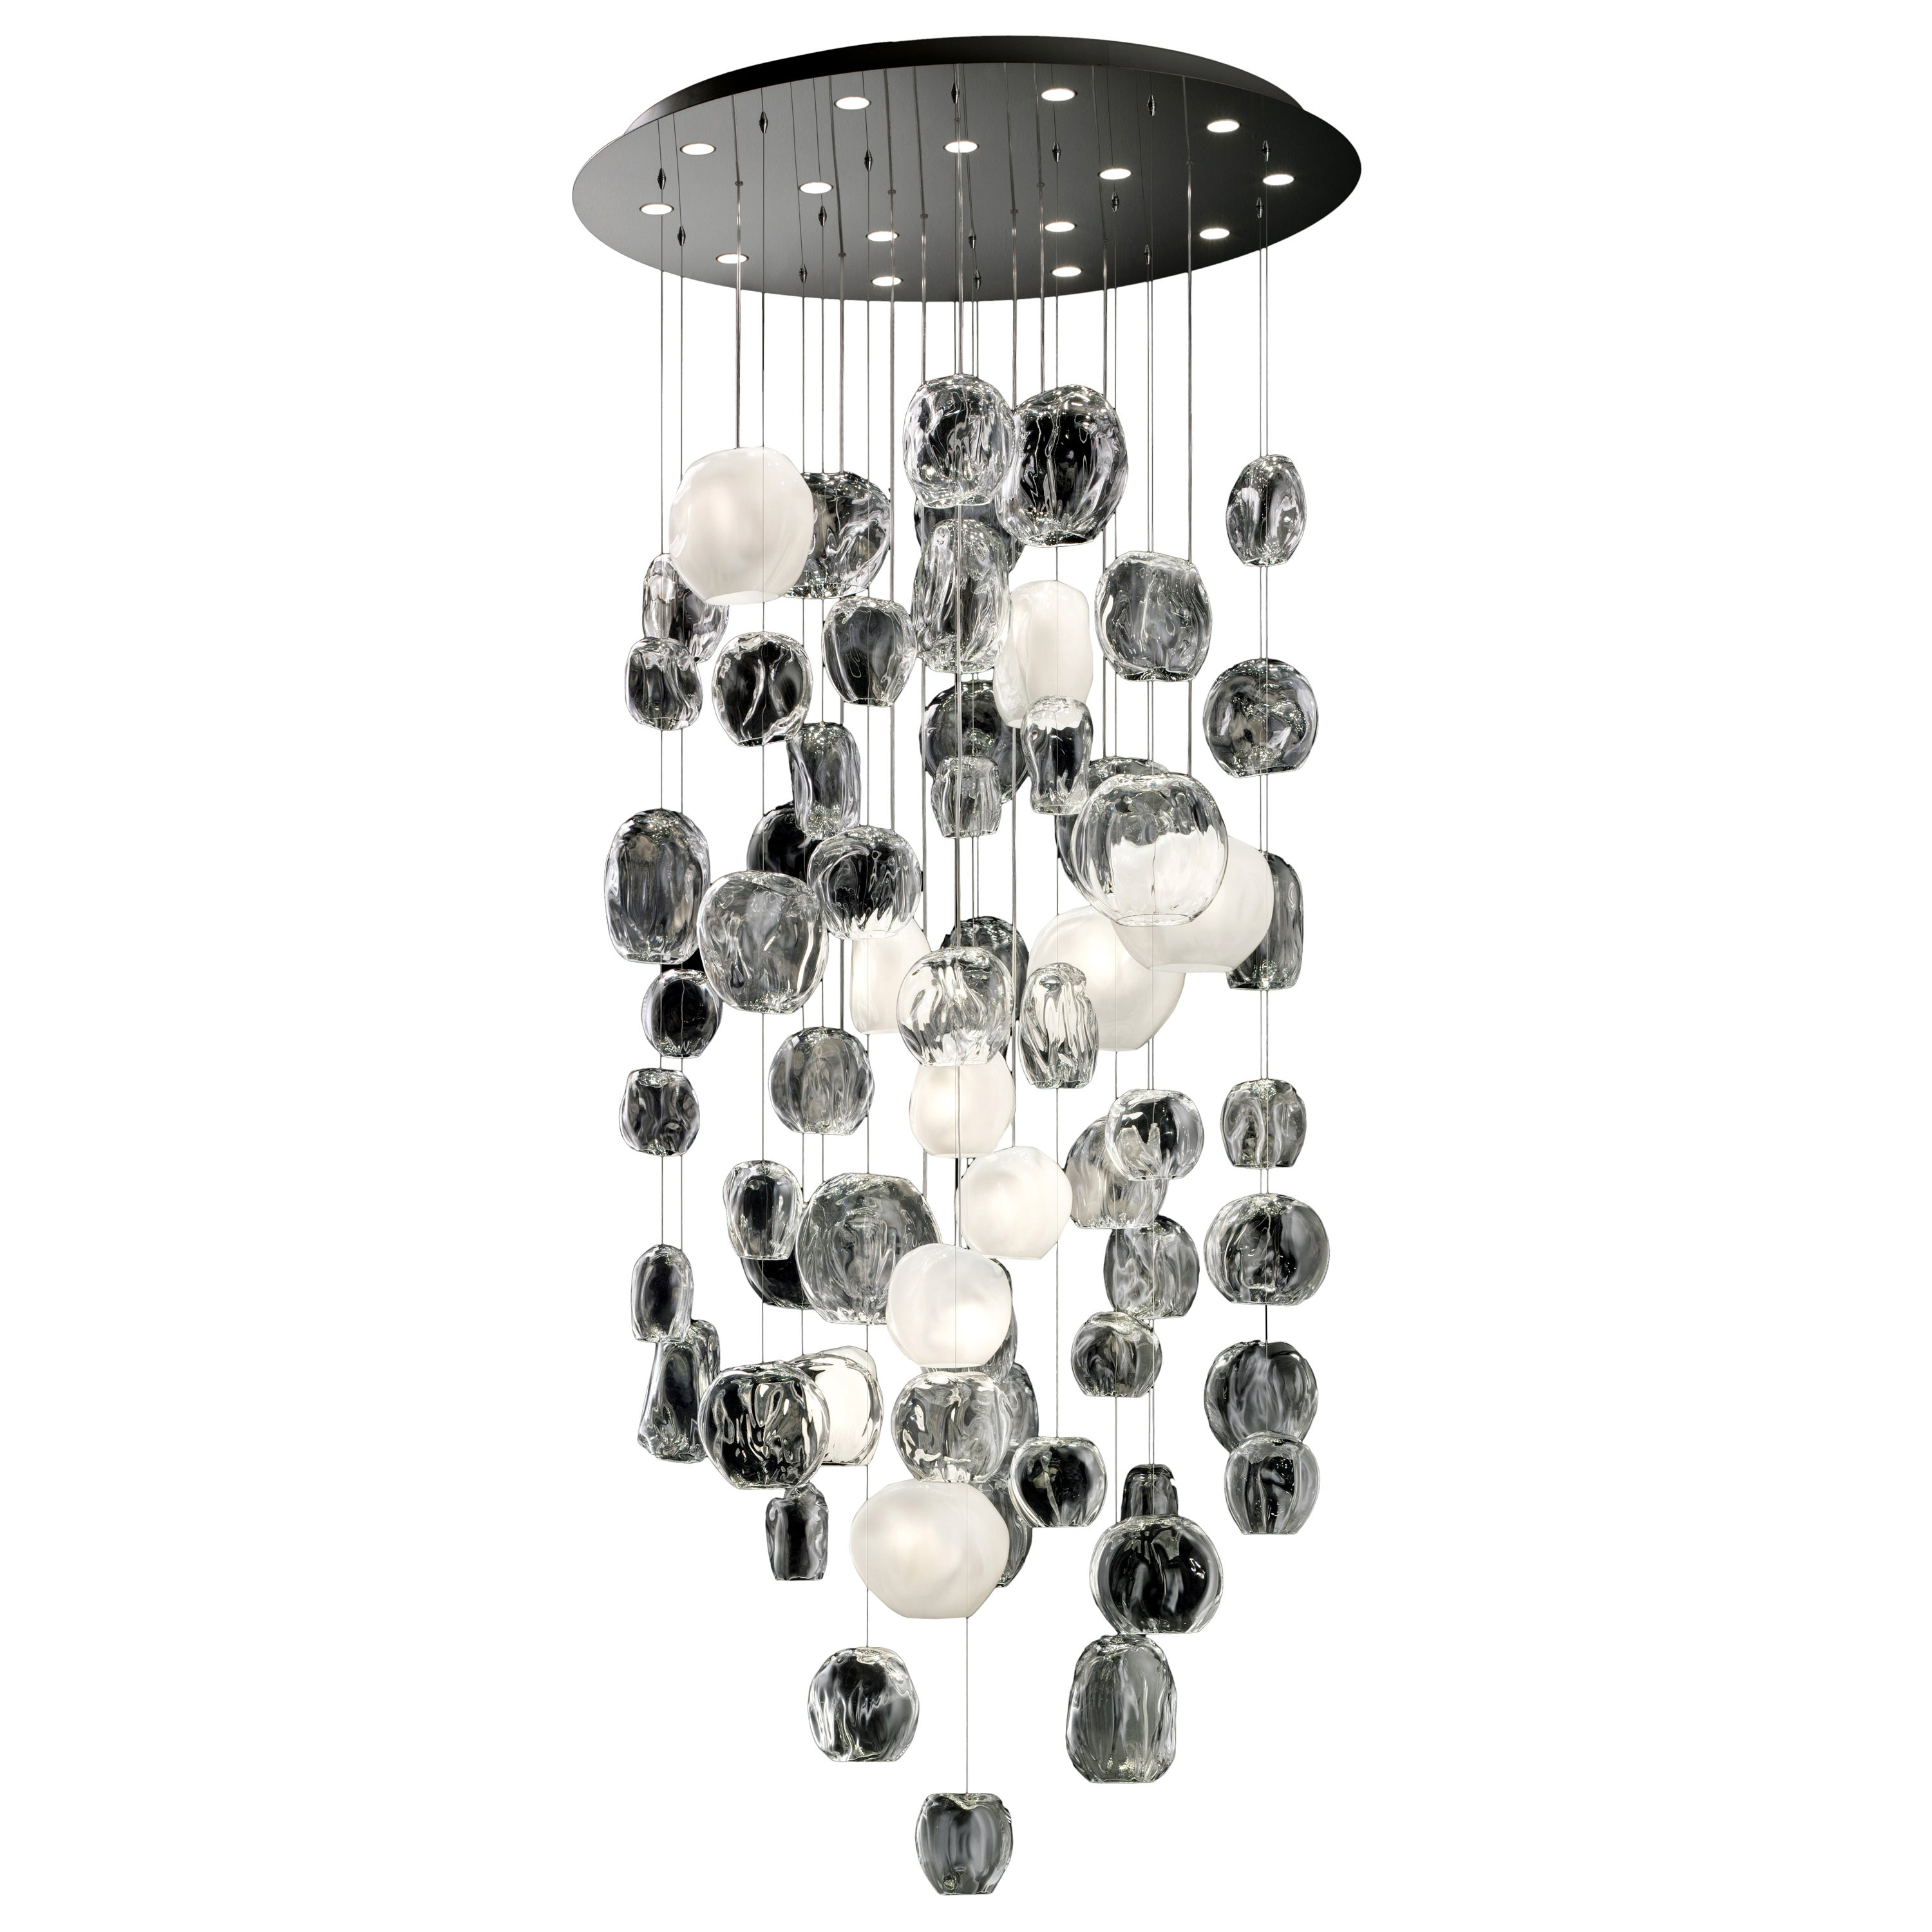 Hanami 7298 Suspension Lamp in Glass and Polished Chrome, by Barovier&Toso